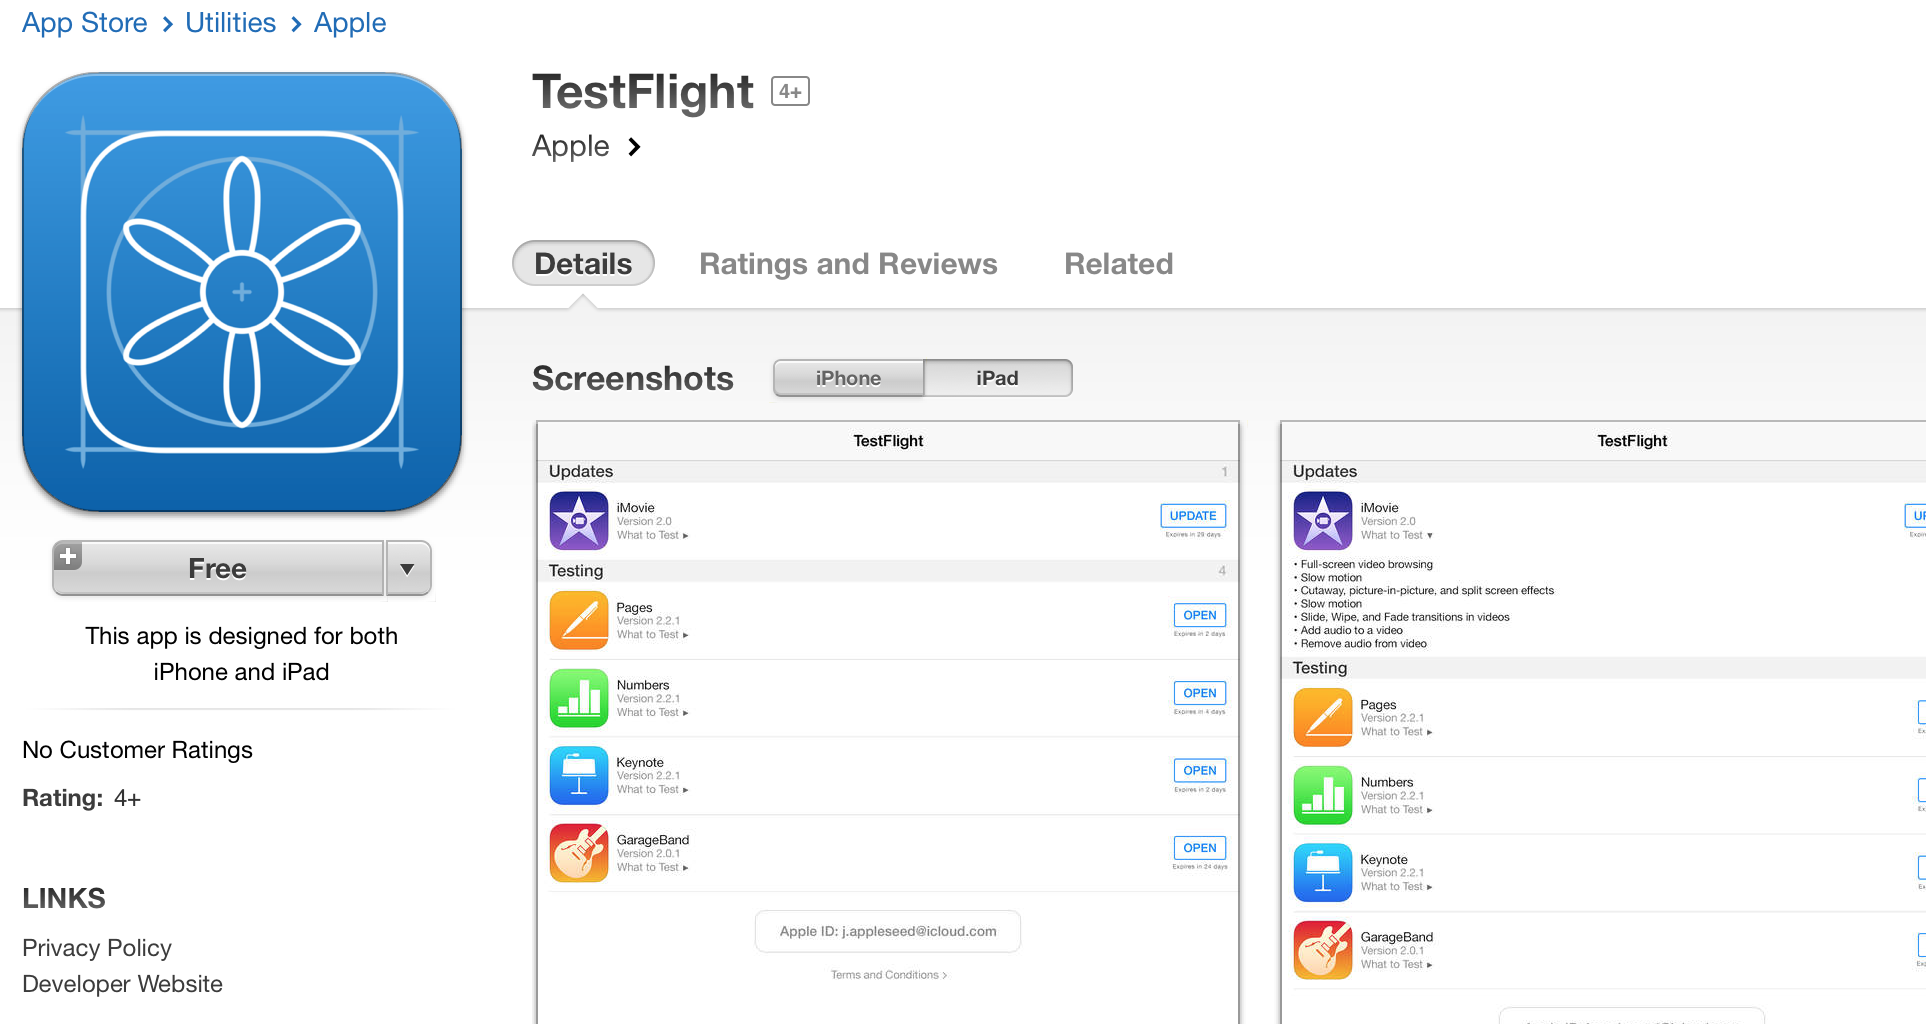 Apple launches TestFlight app just days before 'iPhone 6,' iOS 8 event